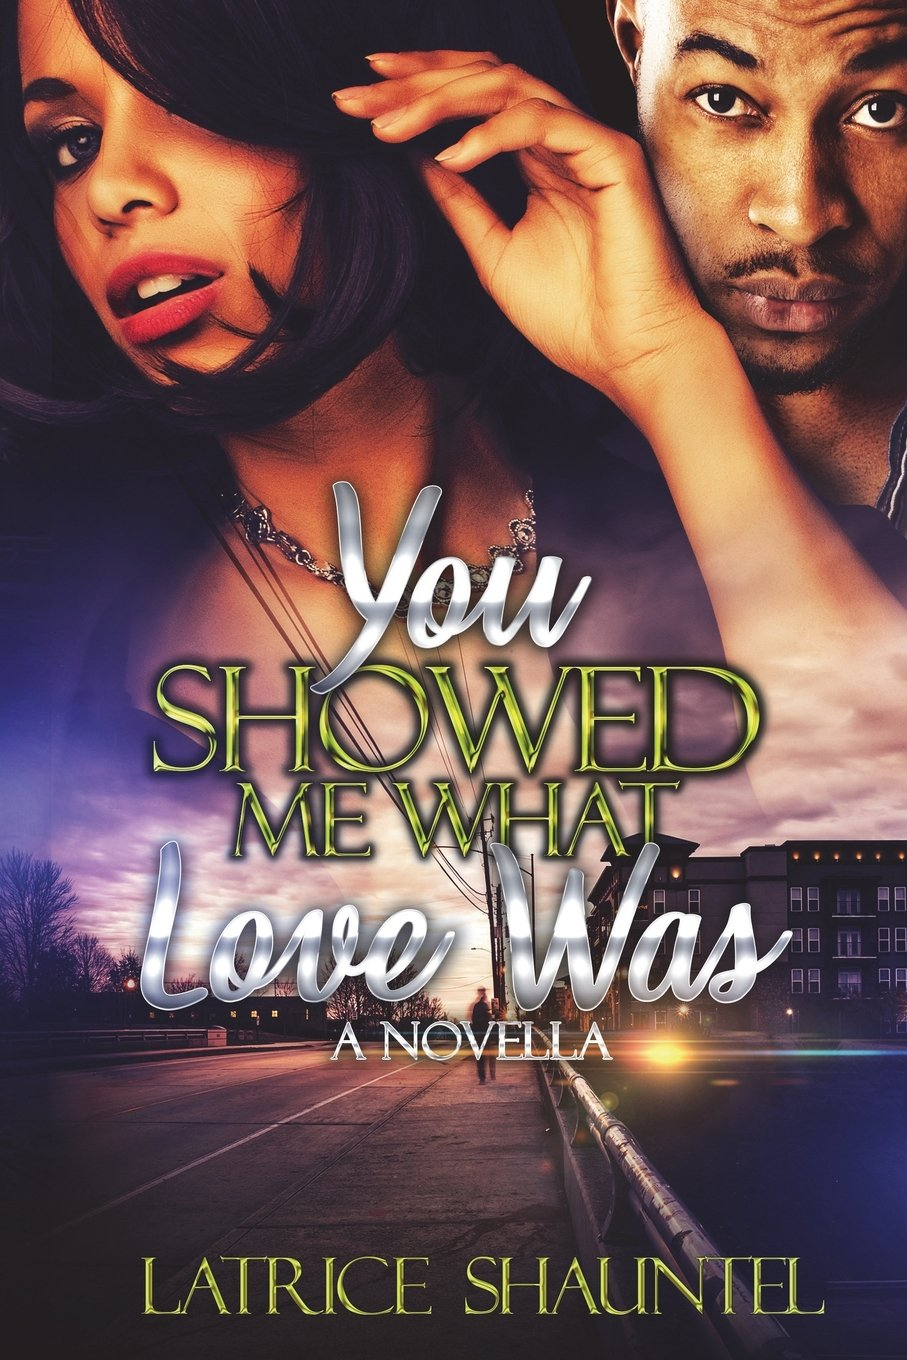 You Showed Me What Love Was: A Novella PDF